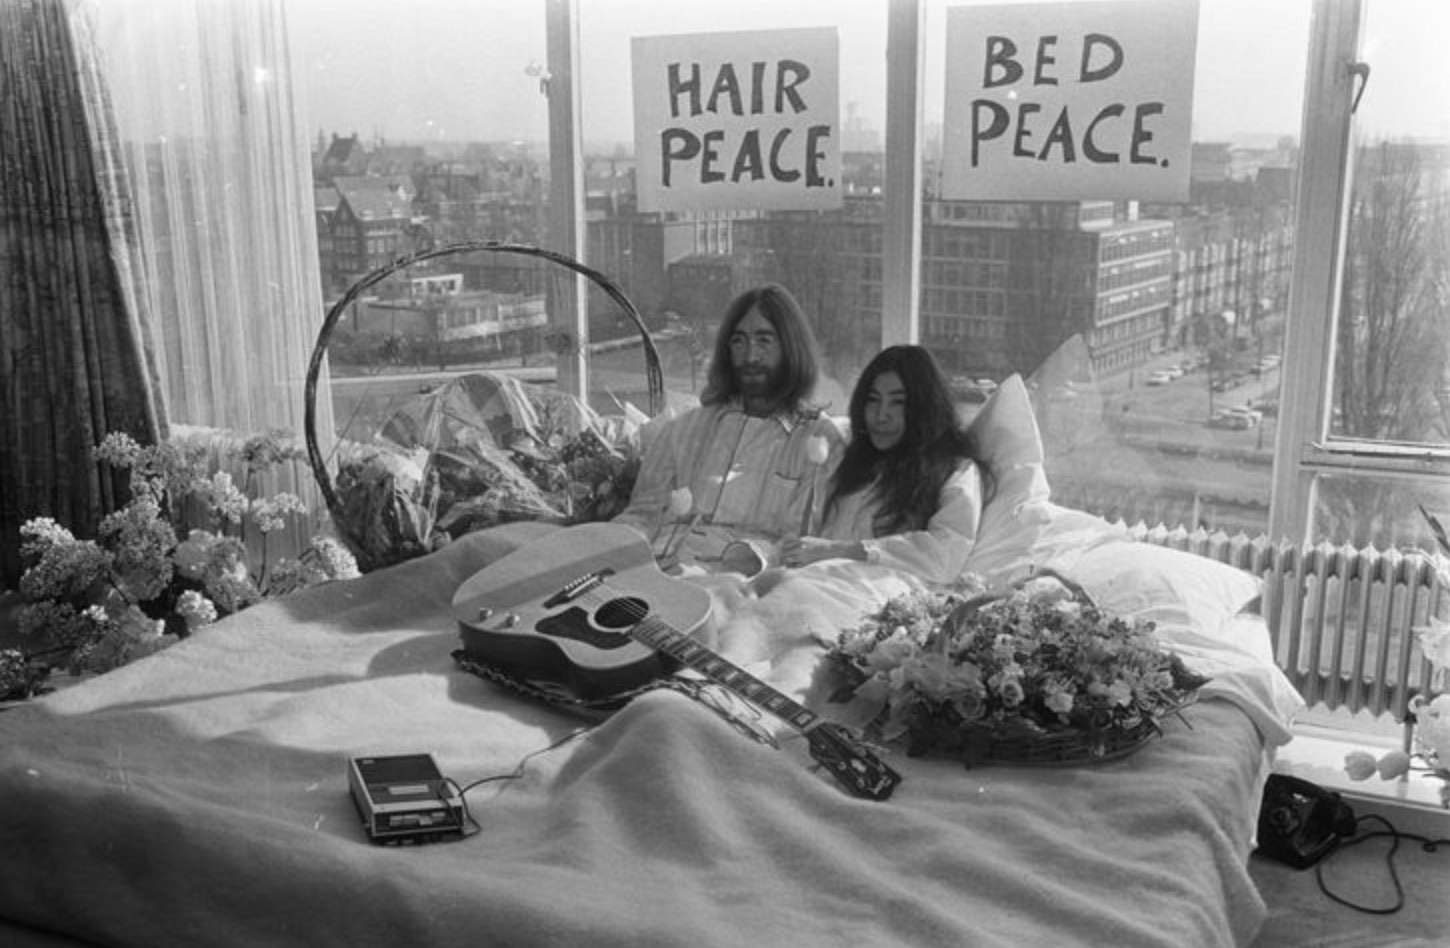 John Yoko Bed Bedroom